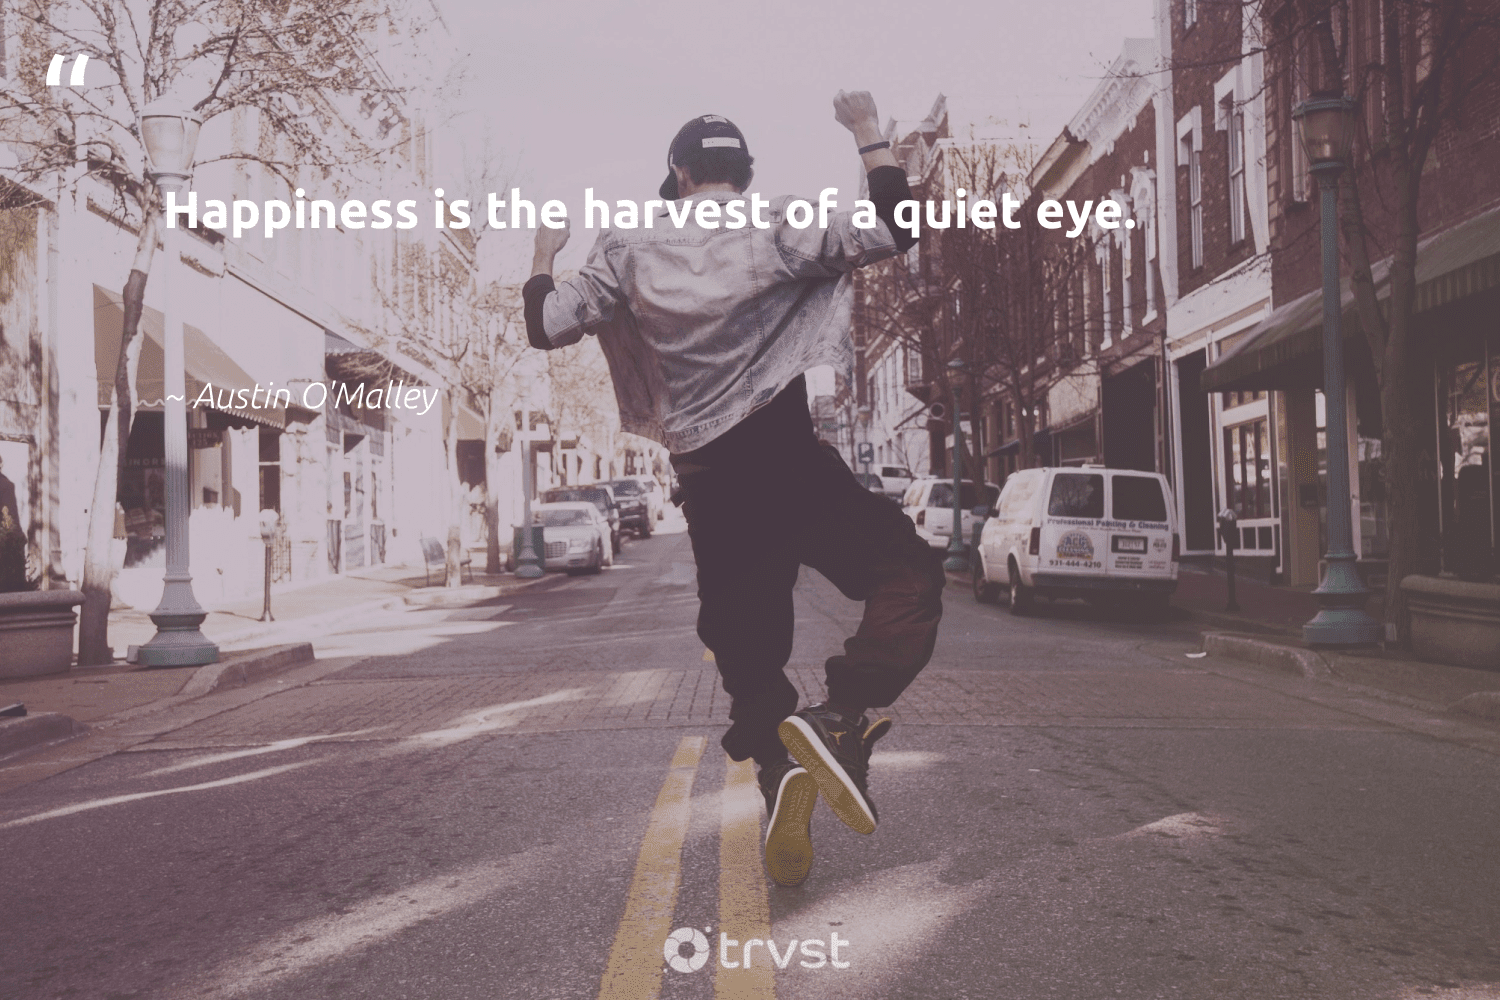 """""""Happiness is the harvest of a quiet eye.""""  - Austin O'Malley #trvst #quotes #happiness #begreat #bethechange #mindset #thinkgreen #togetherwecan #socialchange #health #changetheworld #nevergiveup"""